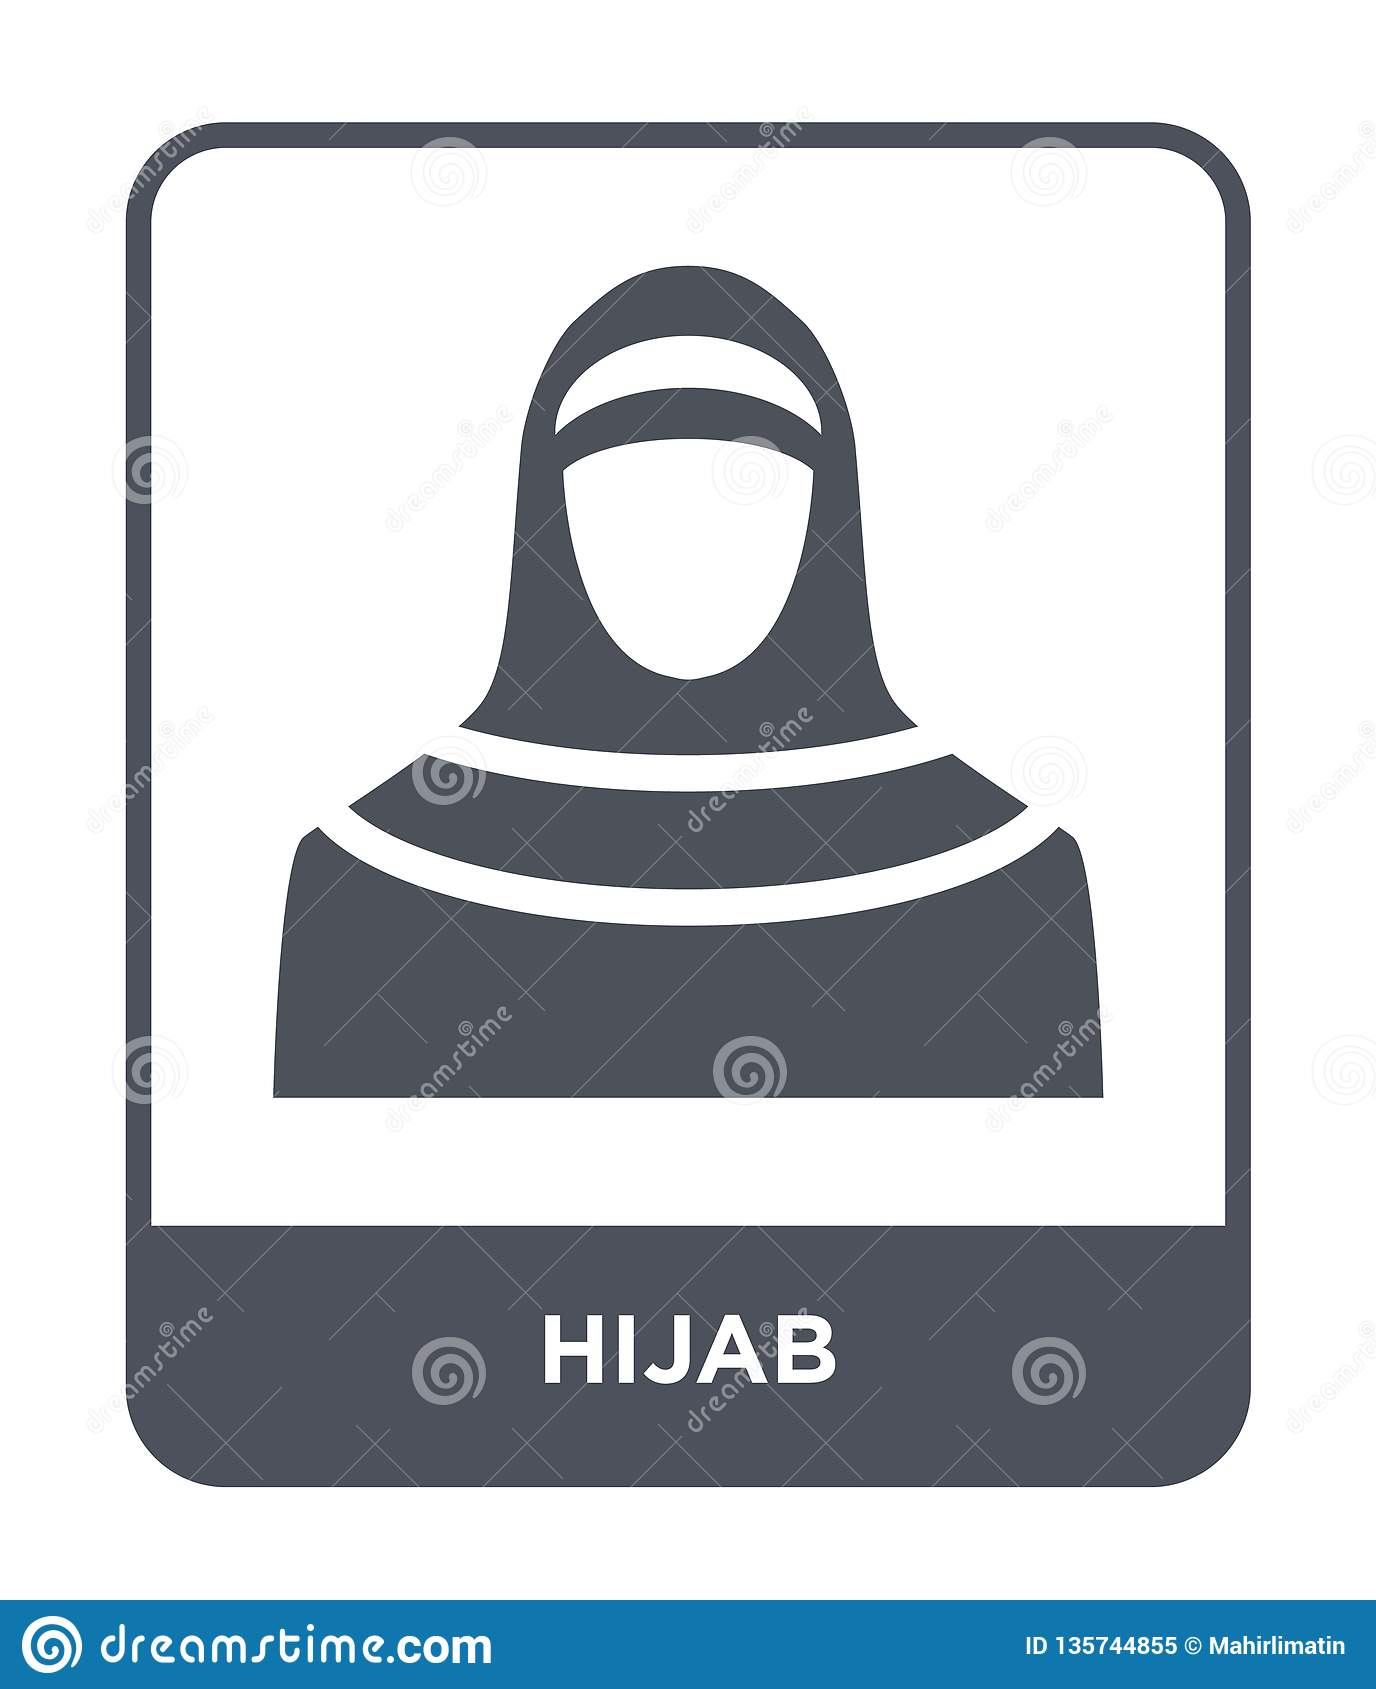 hijab icon in trendy design style. hijab icon isolated on white background. hijab vector icon simple and modern flat symbol for